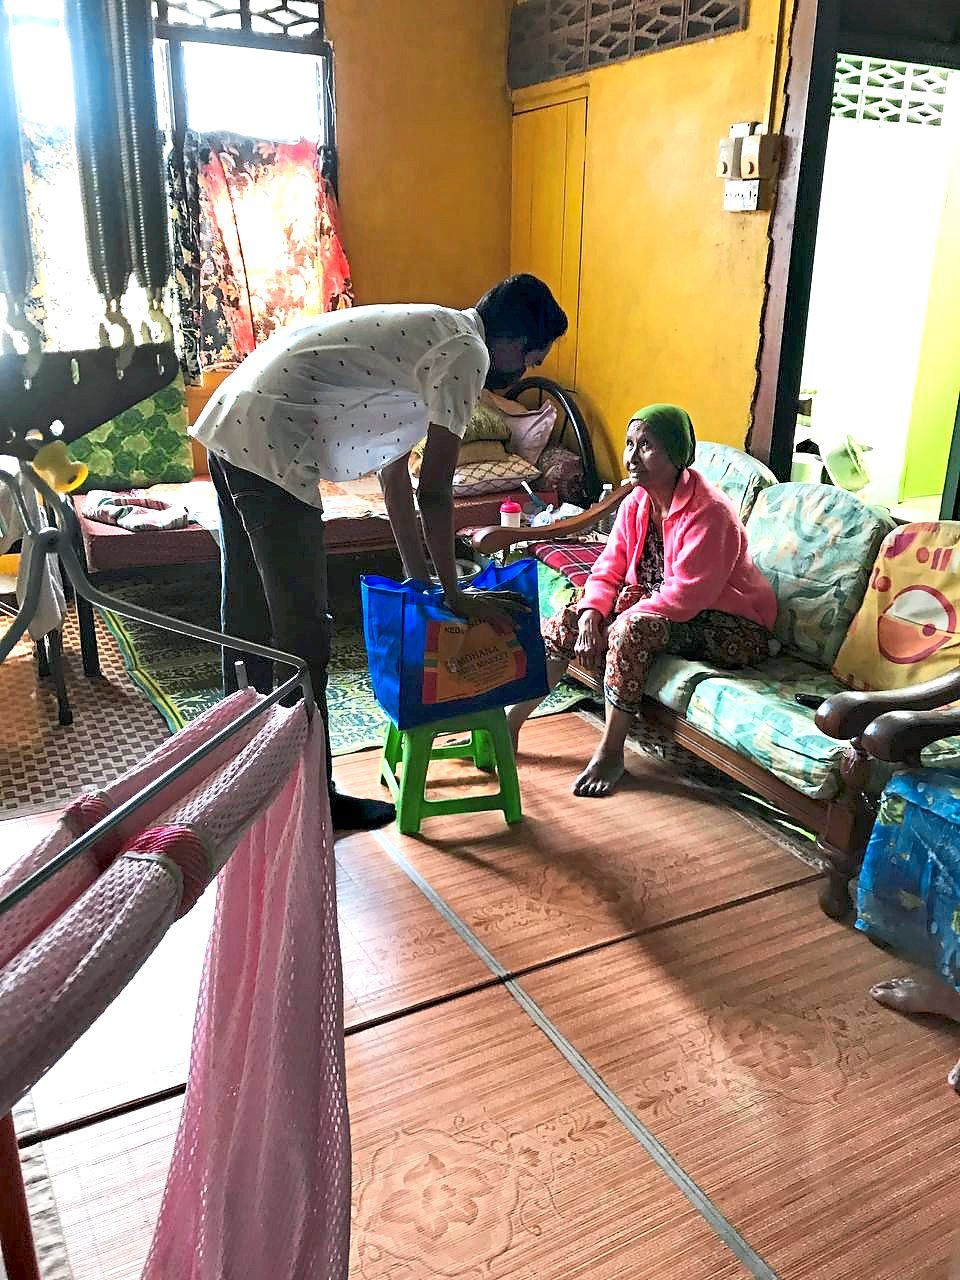 Praviin (left) delivering food supplies to a needy family in Mantin, Negri Sembilan in February.